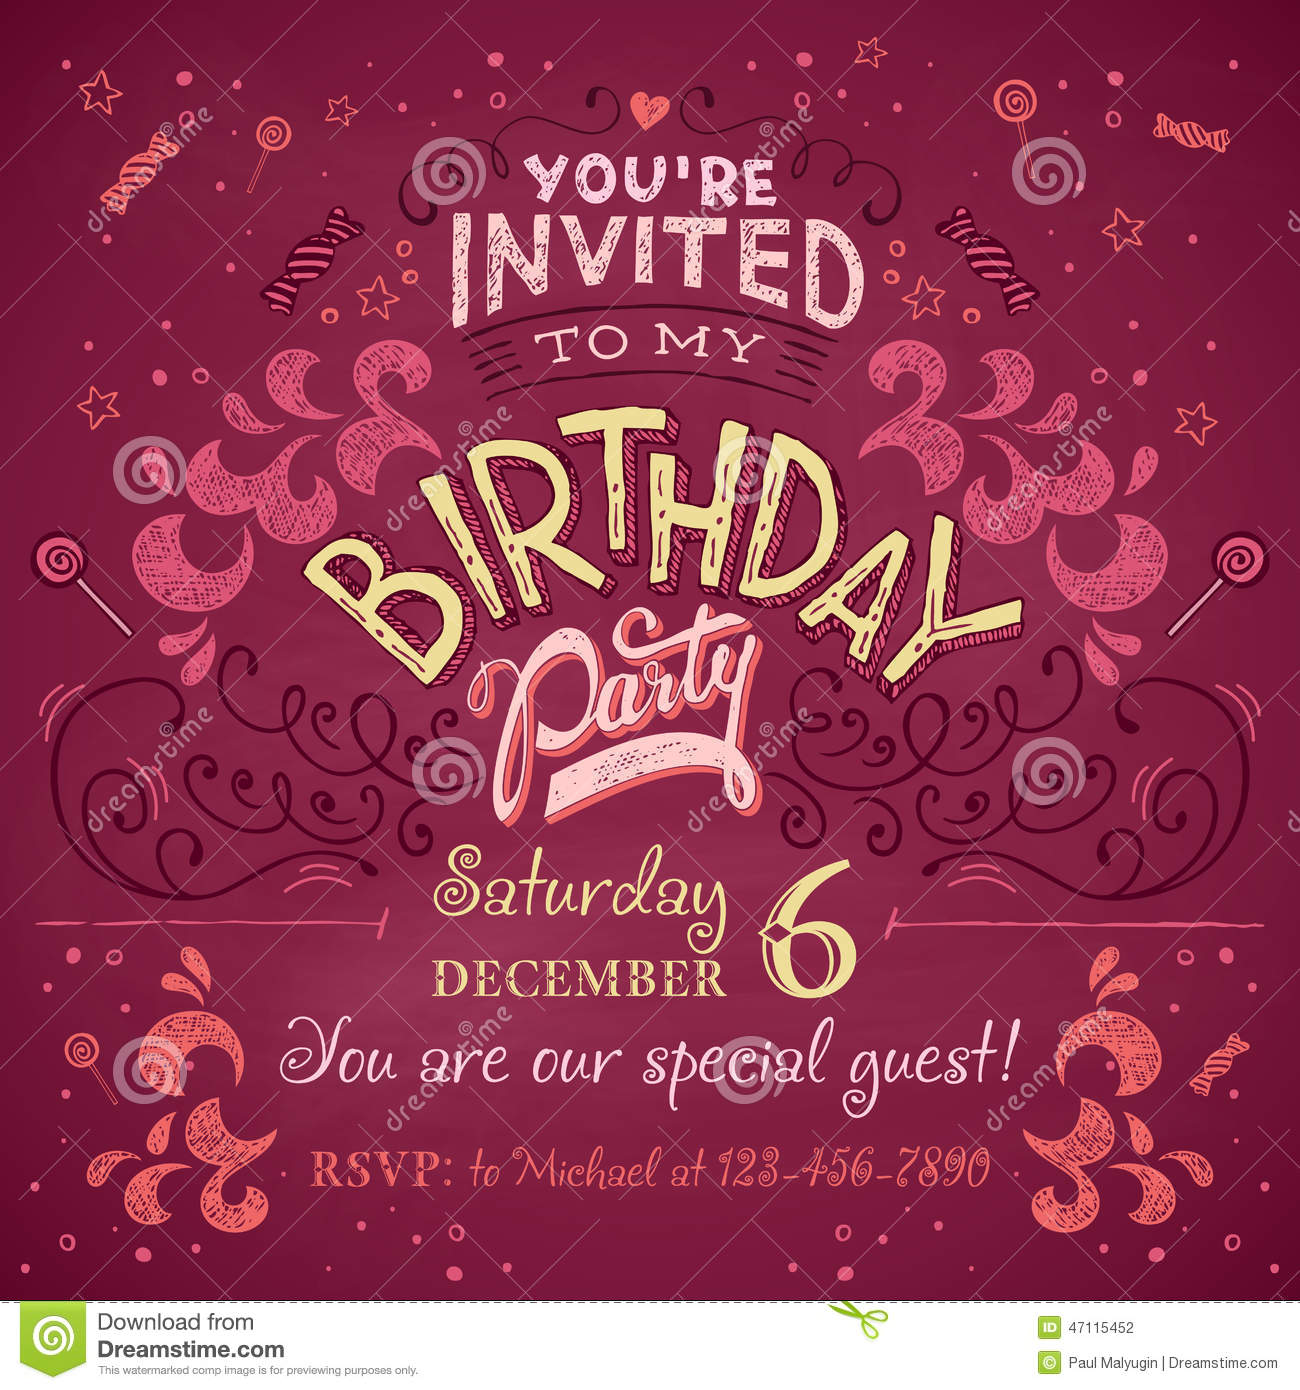 Birthday party invitation stock vector. Illustration of celebrate ...